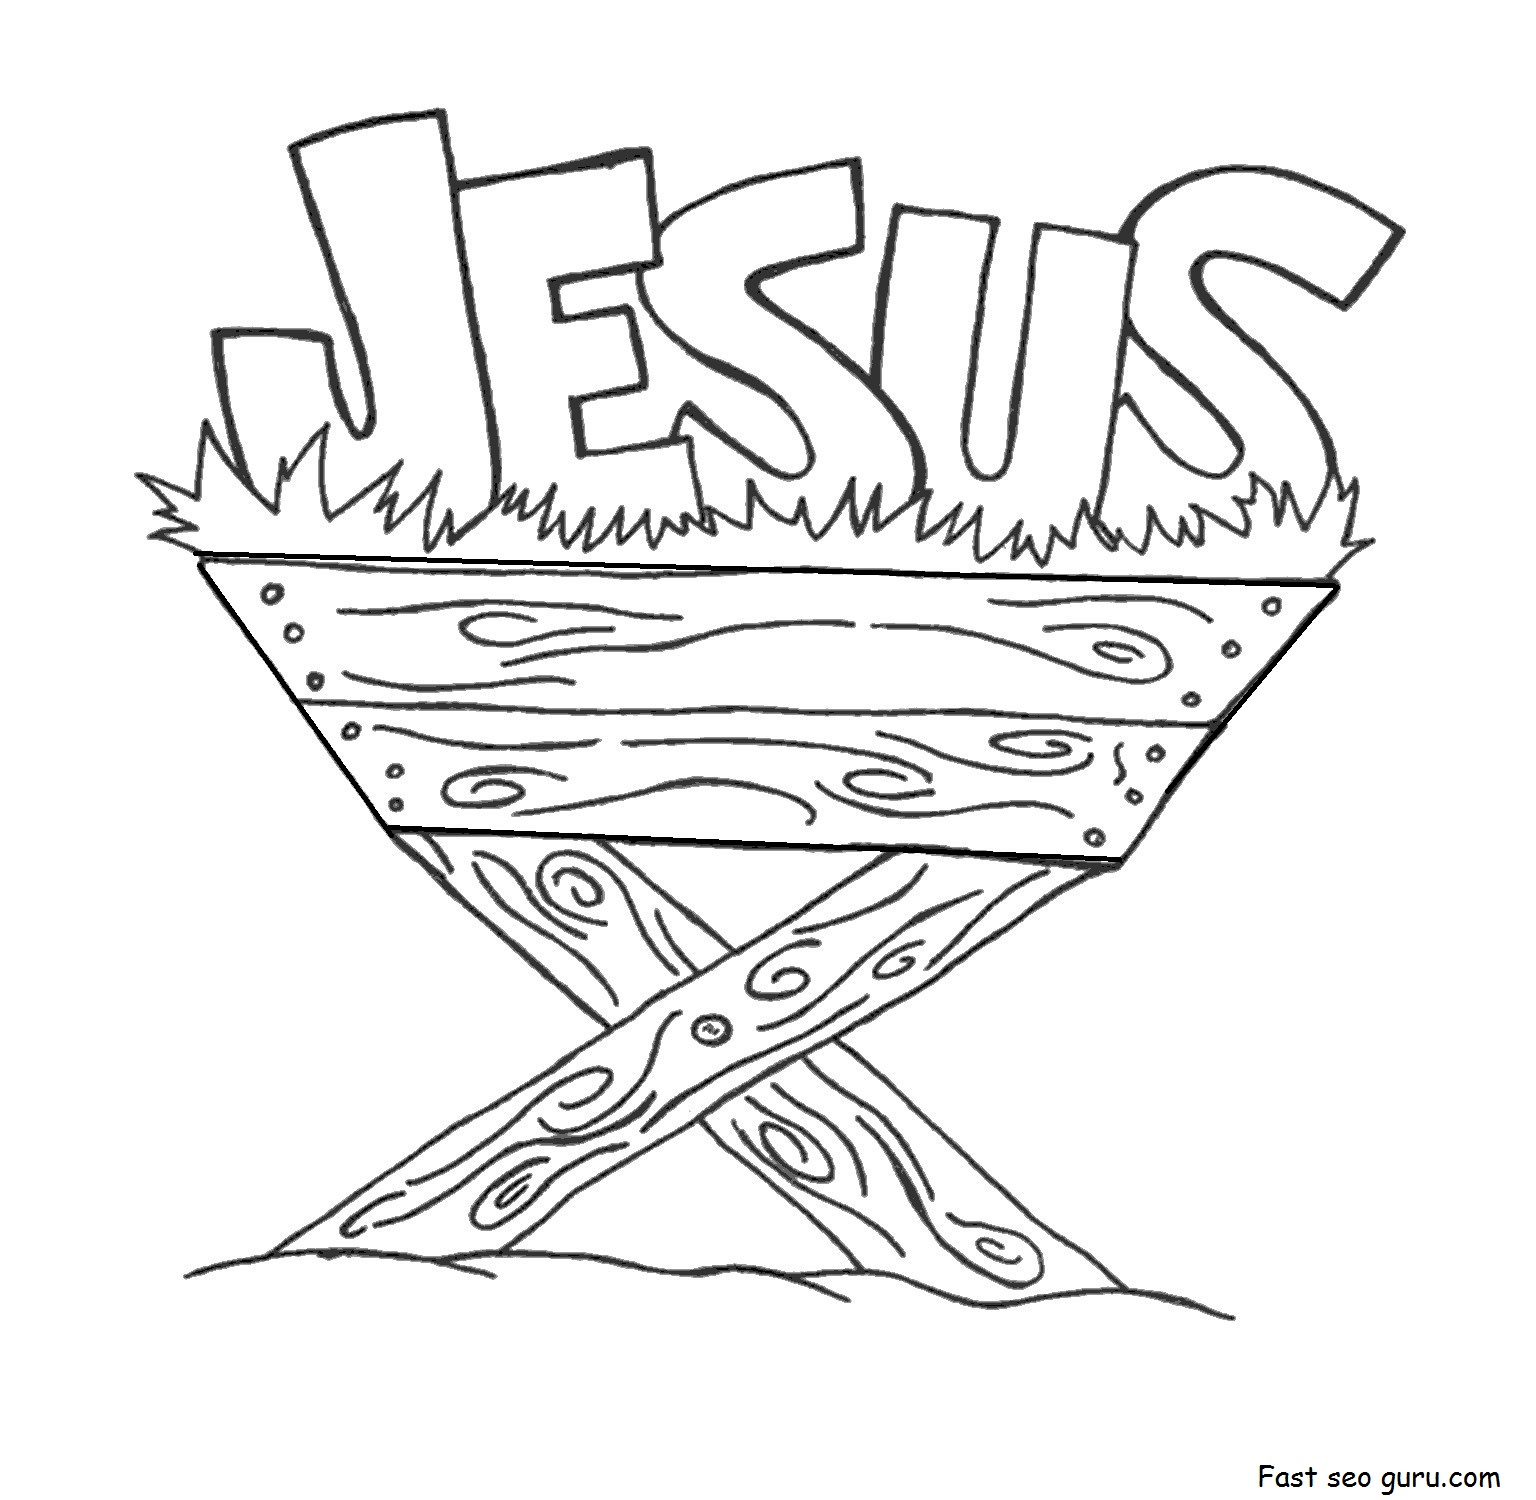 coloring sheet jesus print out jesus in the manger coloring pages sheet coloring jesus